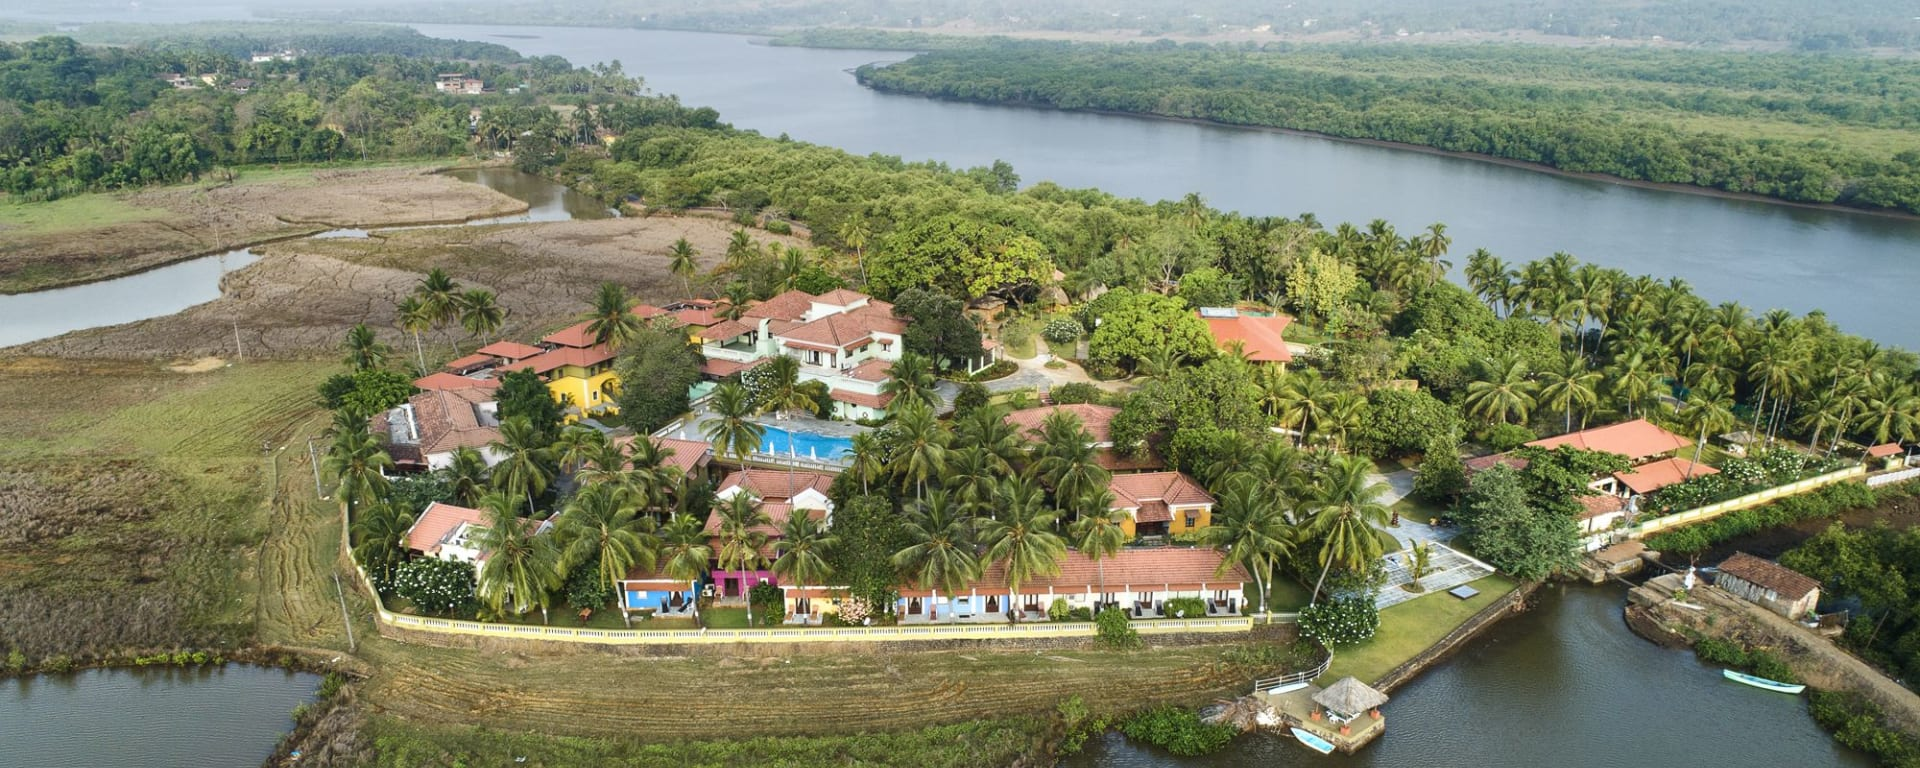 Mercure Goa Devaaya Retreat: Aerial View